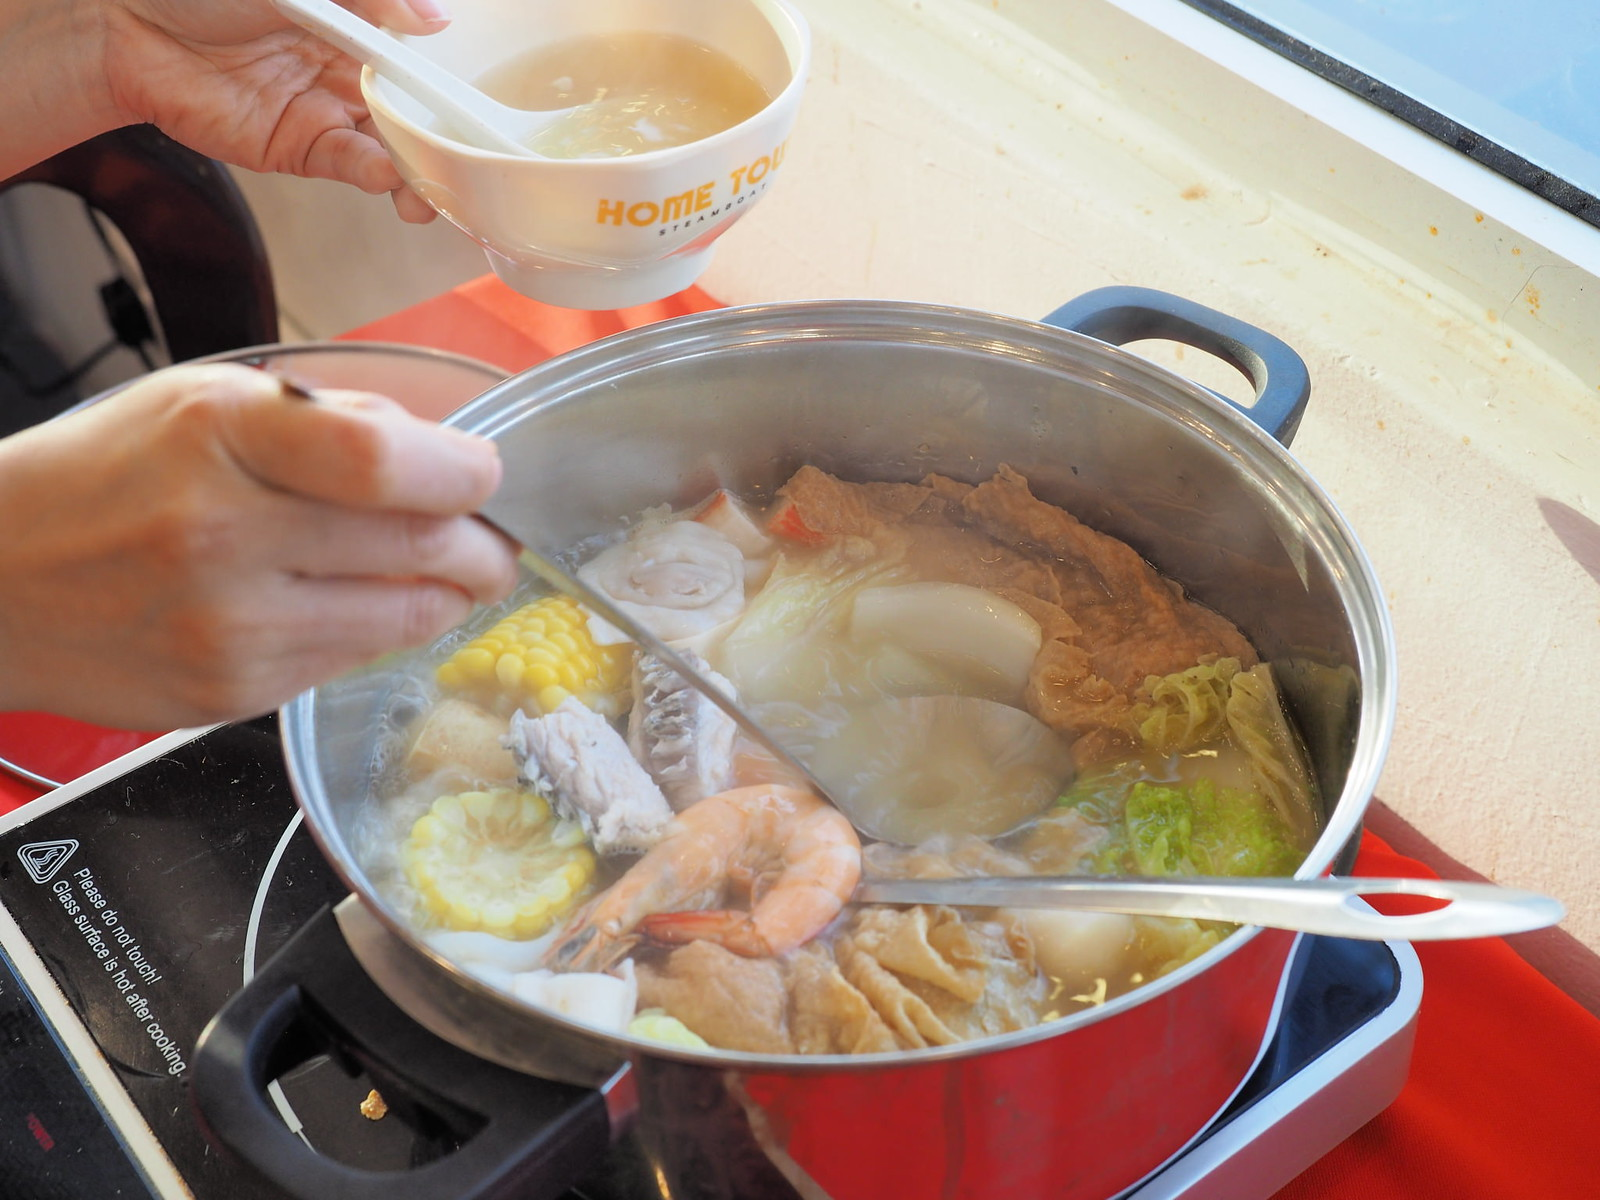 Taking the soup from the steamboat